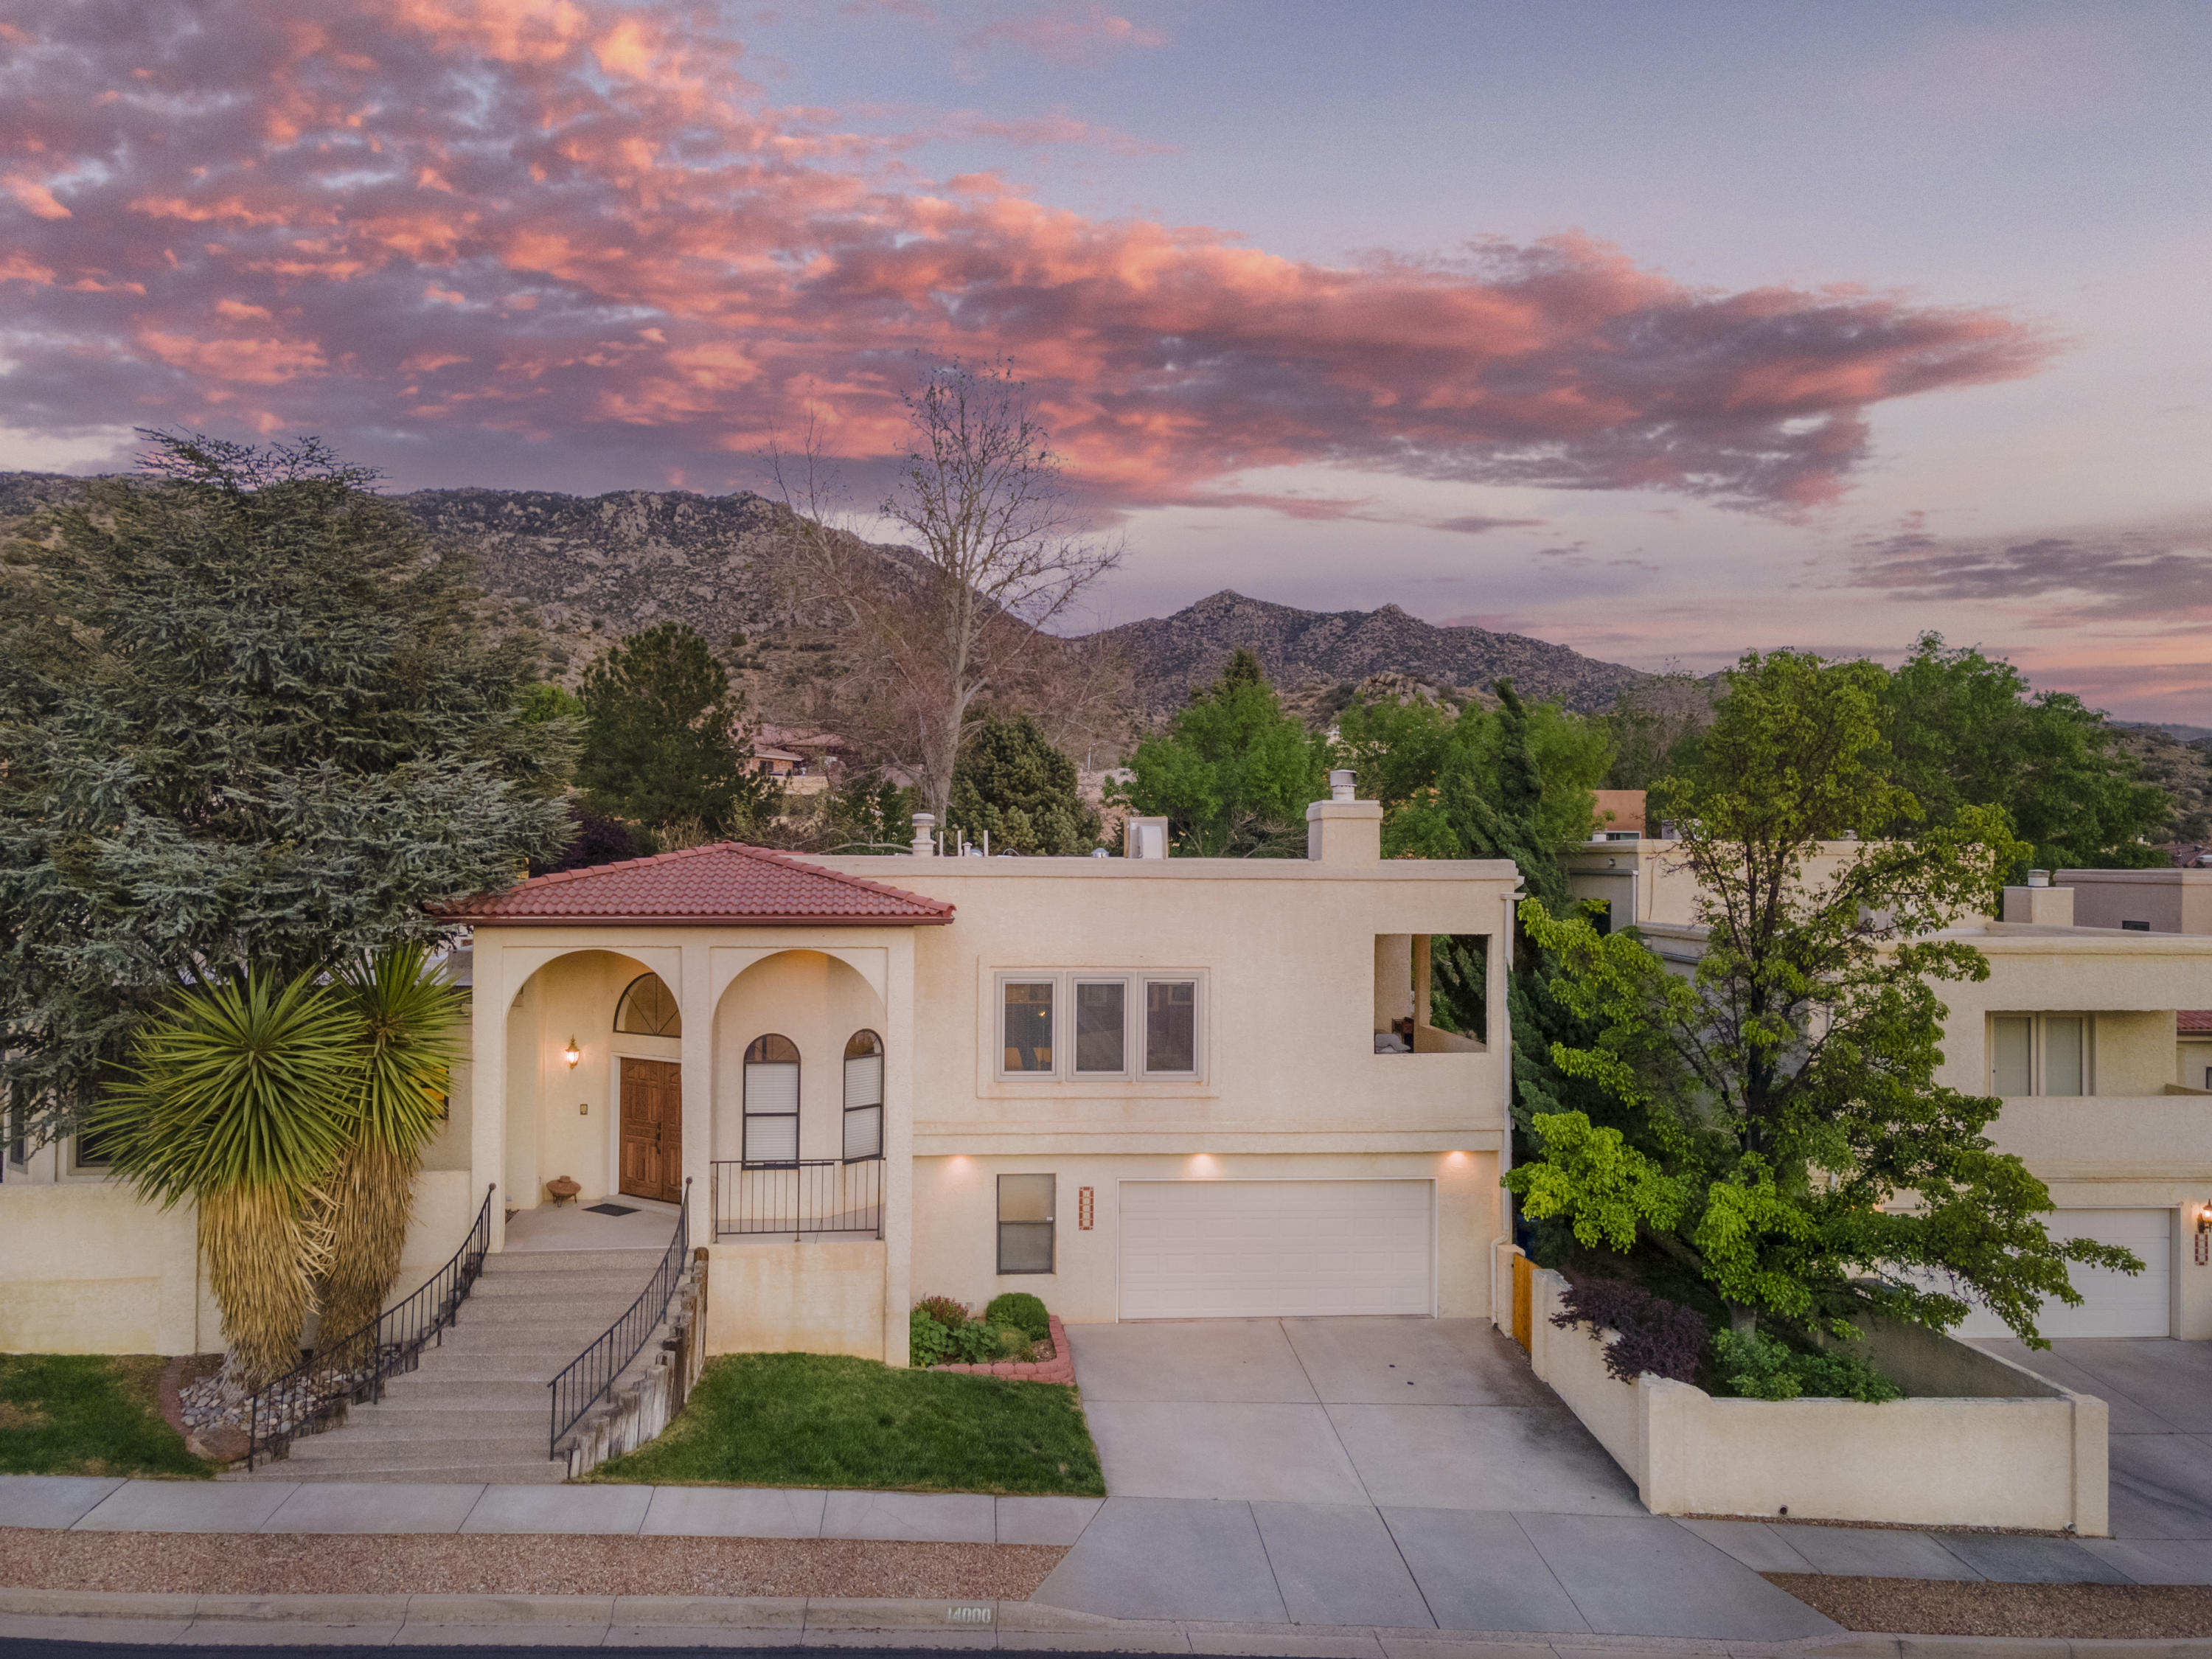 Omega built beauty located in the FOOTHILLS! Situated on a corner lot comprised of 2 lots ( .23 acres) with gorgeous curb appeal. Large welcoming foyer leads to the  first living area, beautiful 1/2 bath, incredible updated kitchen with Ernie Torres cabinets, granite countertops, stainless steel appliances w/dual function micro (also a convection oven), brkfst bar, formal dining w/ access to private covered deck with Stunning Views. The  light & bright den offers a second living area to include a flex space. Large Primary Suite offers it's own access to the backyard. Good sized secondary bdrms. AND as a bonus there is a hobby room/wine cellar. Fabulous entertaining space on the large cedar deck (newer) overlooking the pretty backyard. 2car garage. ABSOLUTELY STUNNING HOME!!